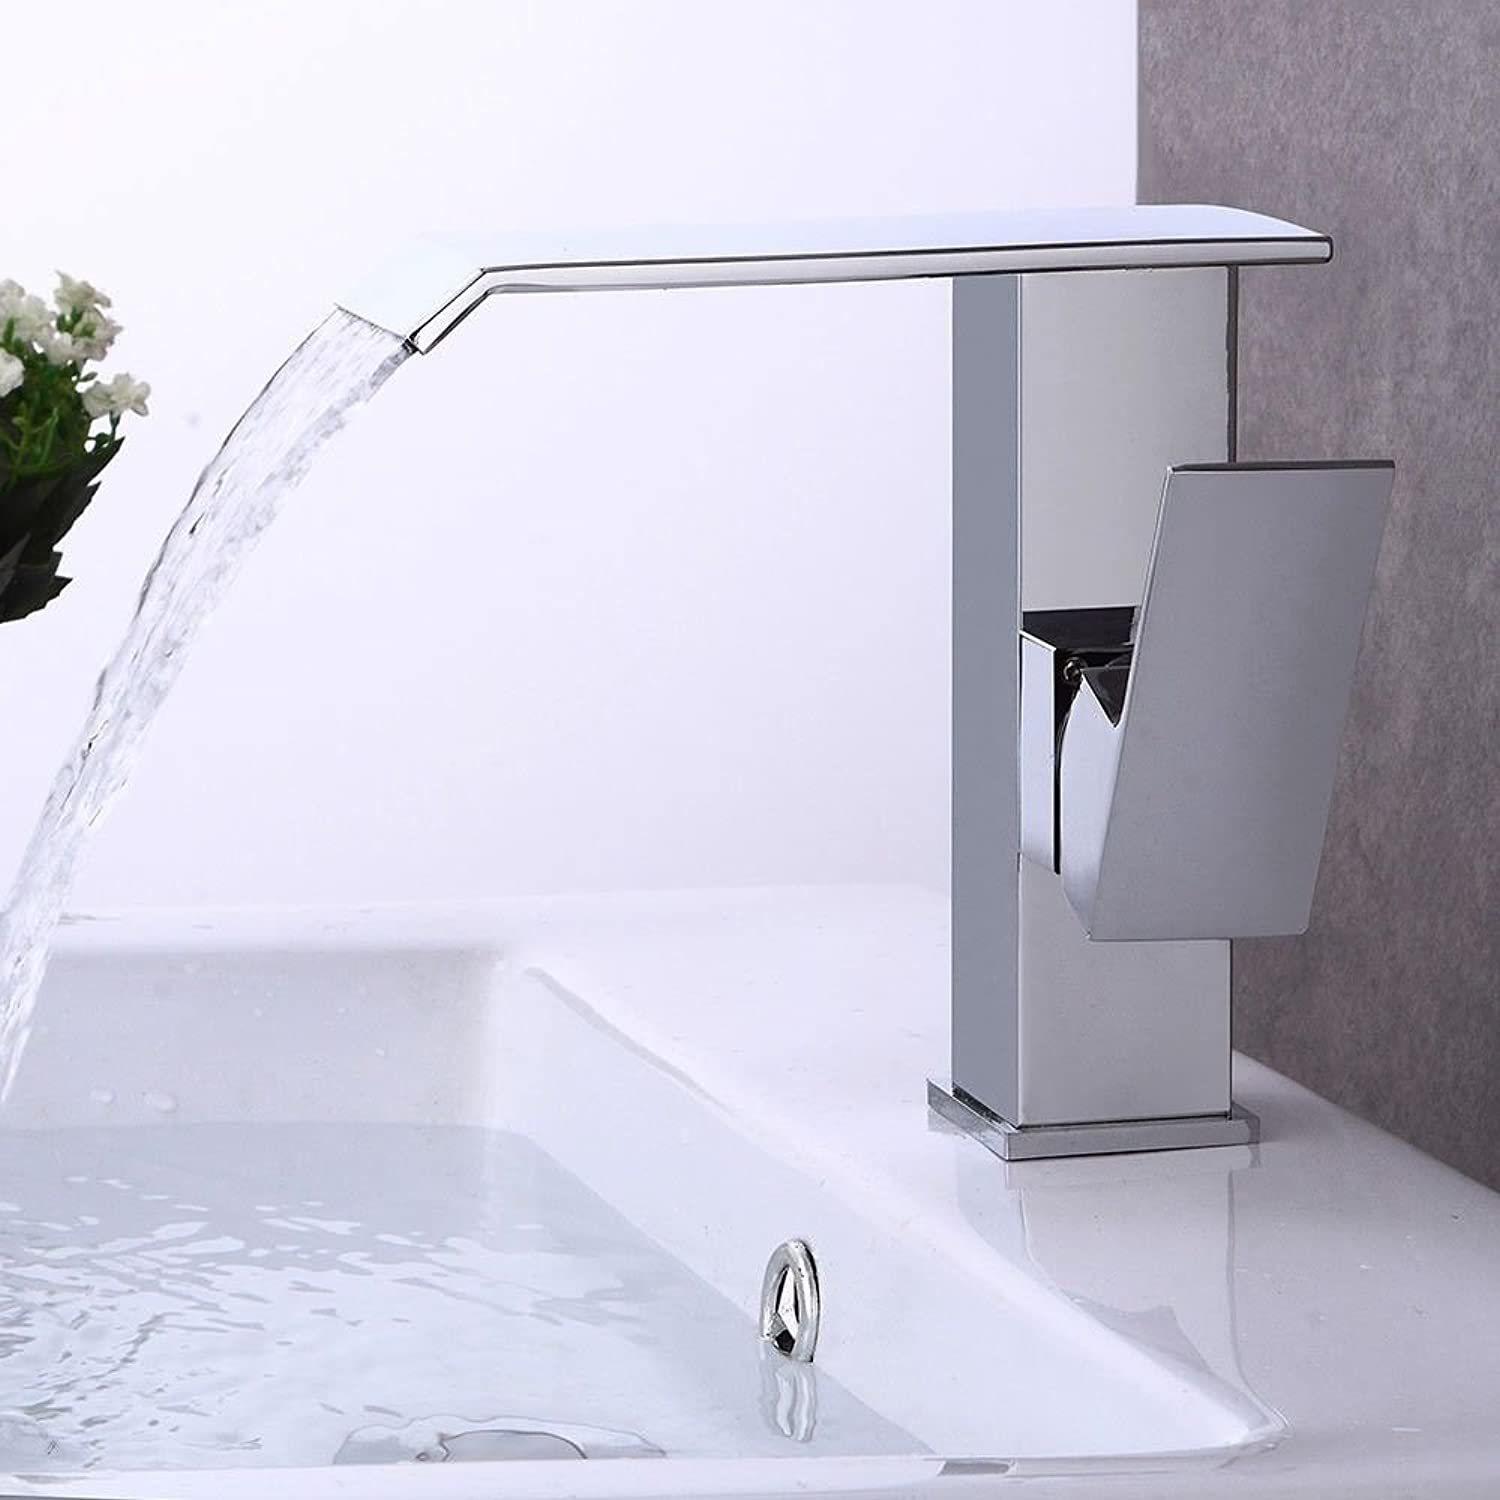 NewBorn Faucet Kitchen Bathroom Sink Mixer Tap Antique Brushed Brass Single Handle One Hole Ceramic Valve Spout Waterfall Basin Floor